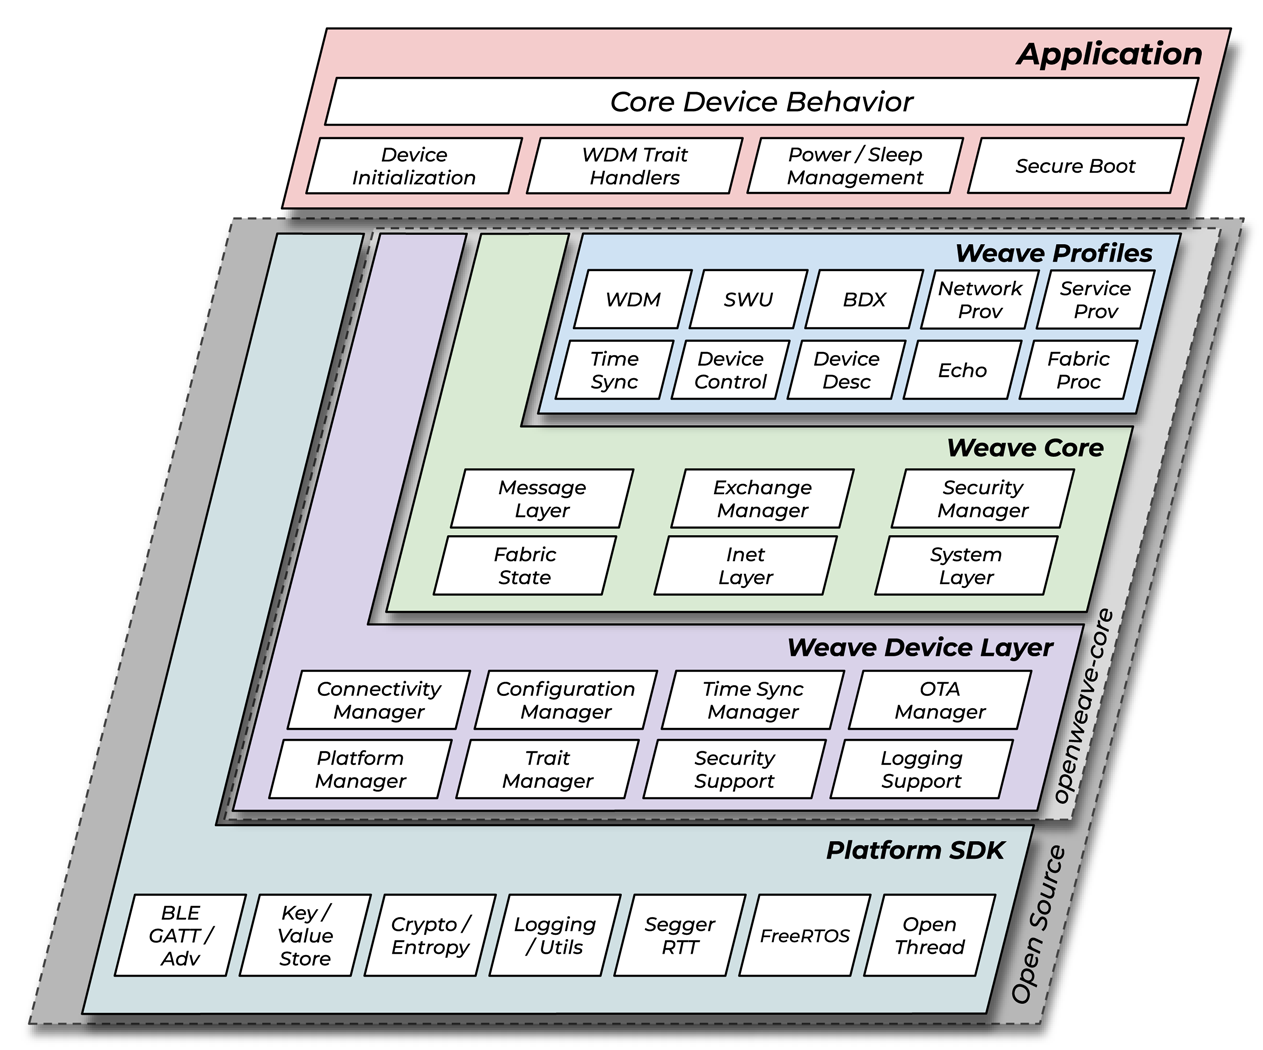 OpenWeave Device Layer Architecture